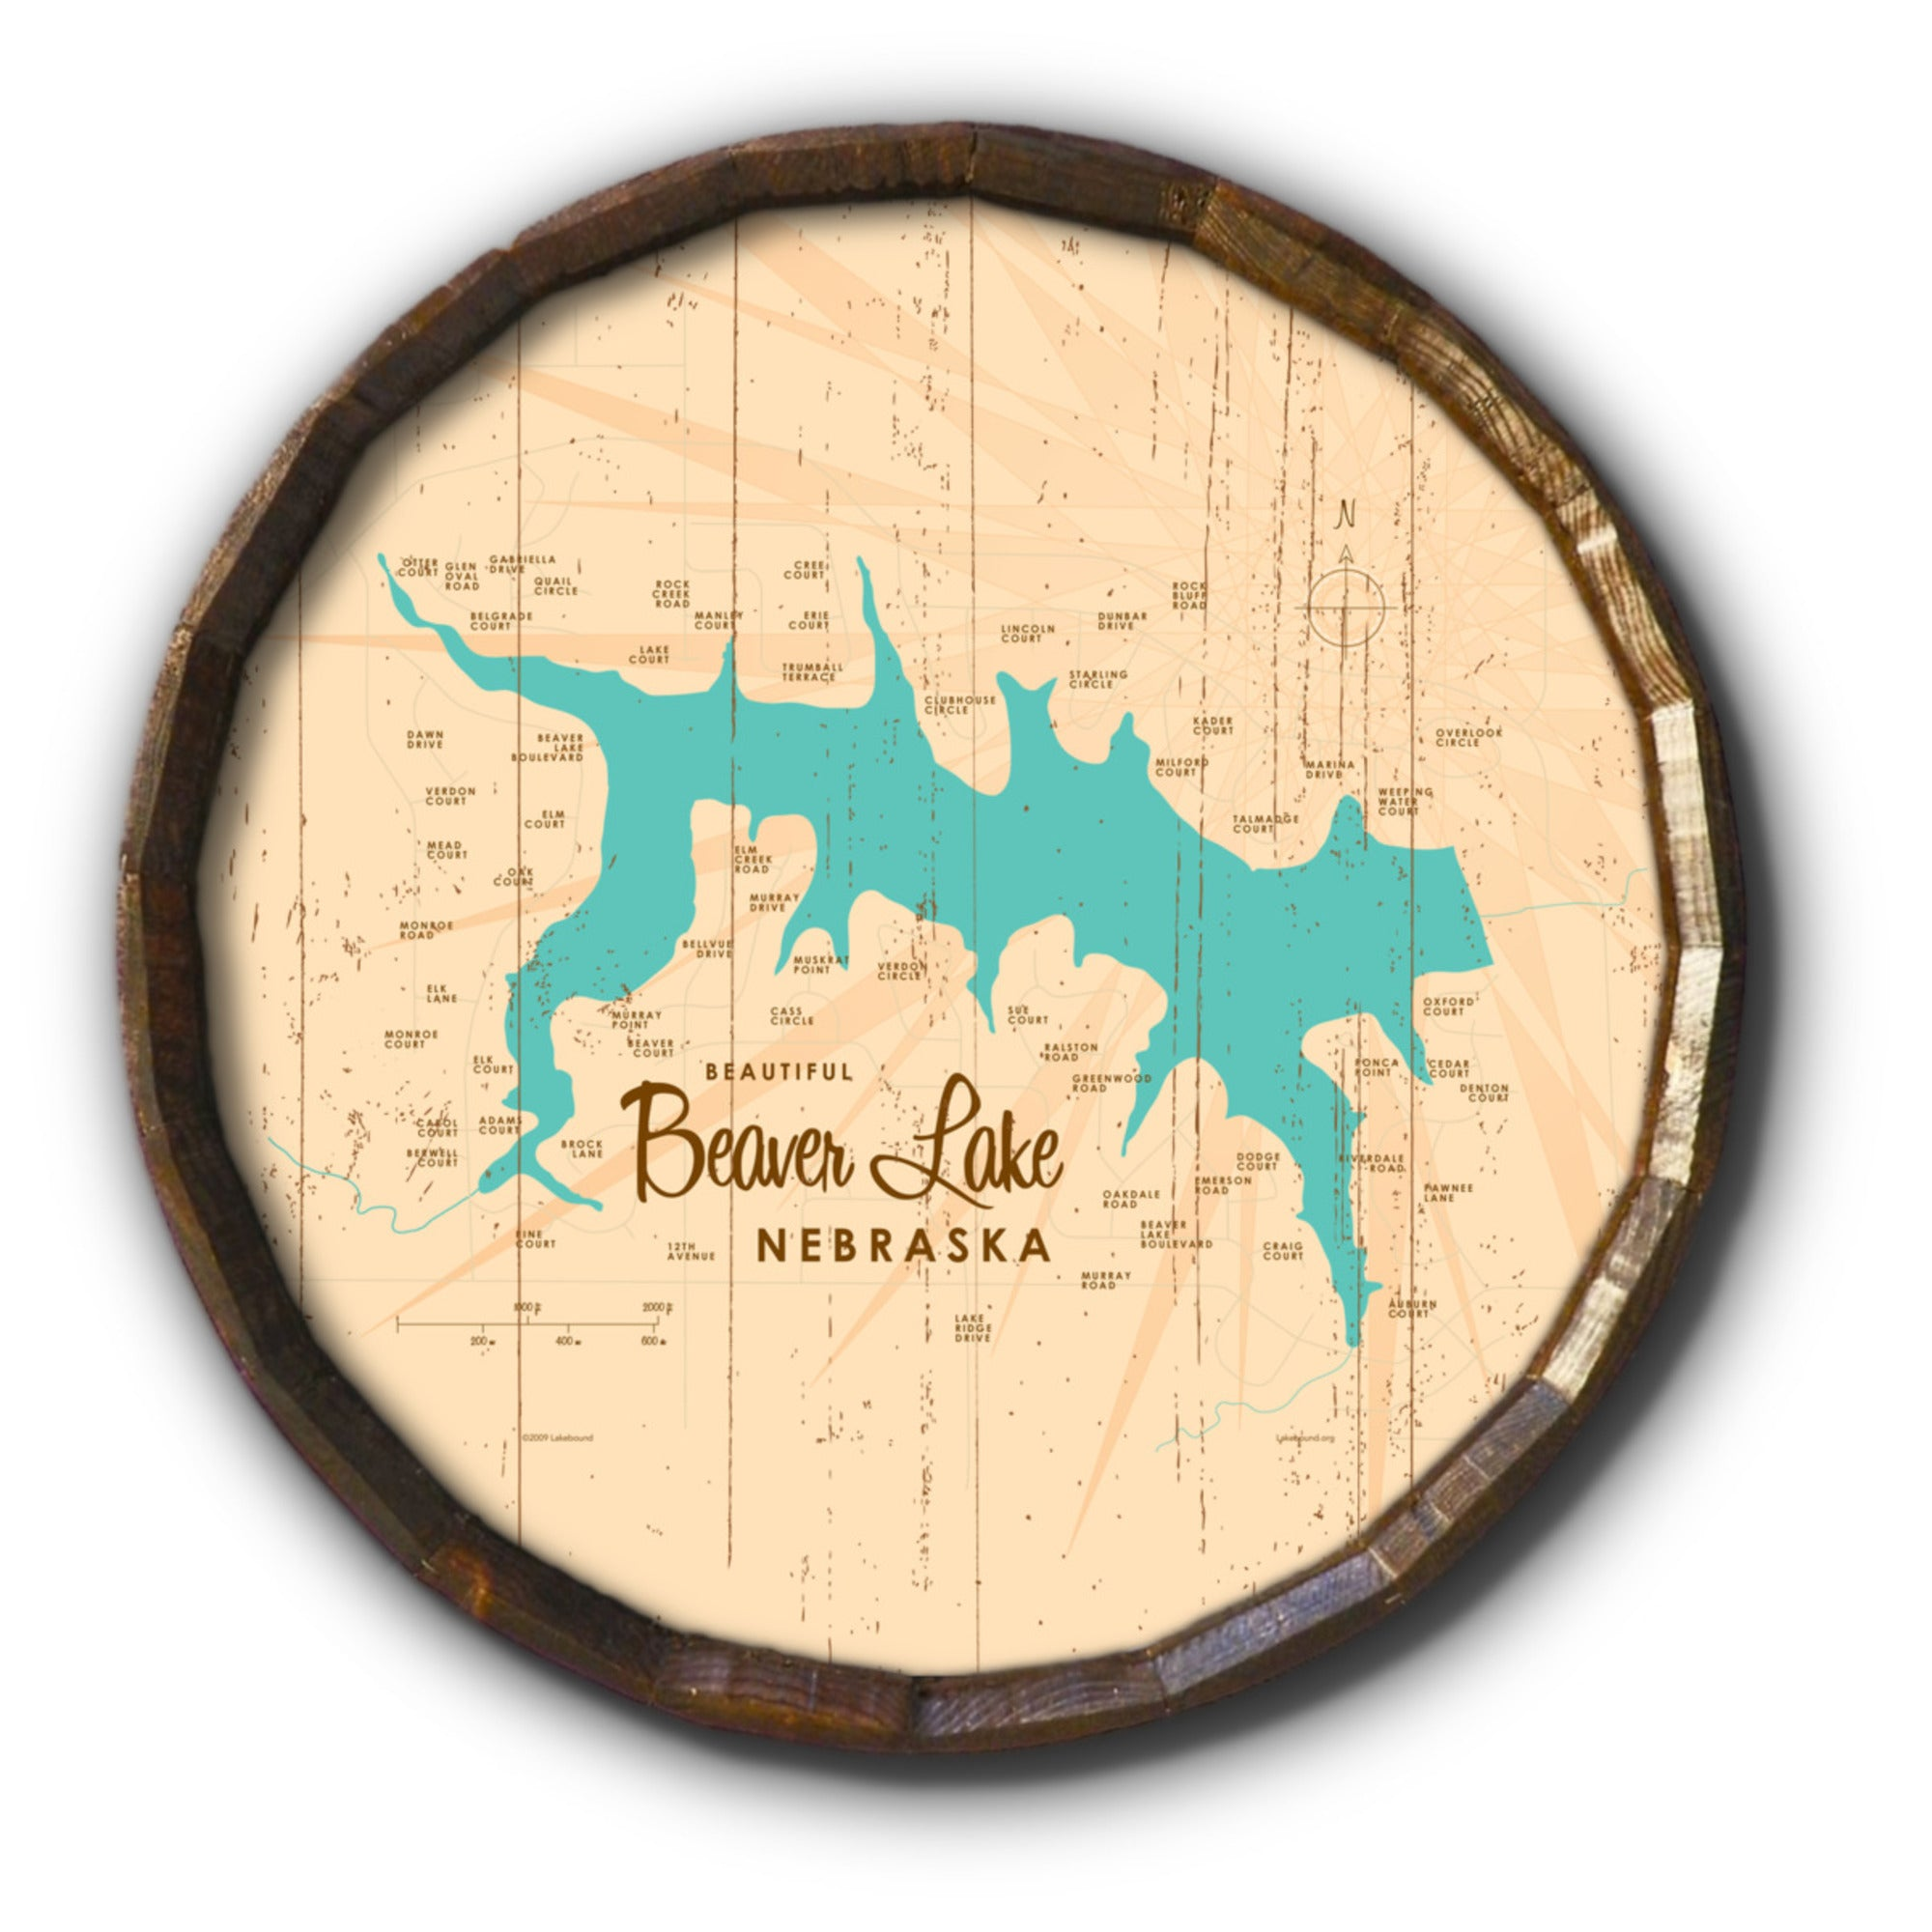 Beaver Lake Nebraska, Rustic Barrel End Map Art